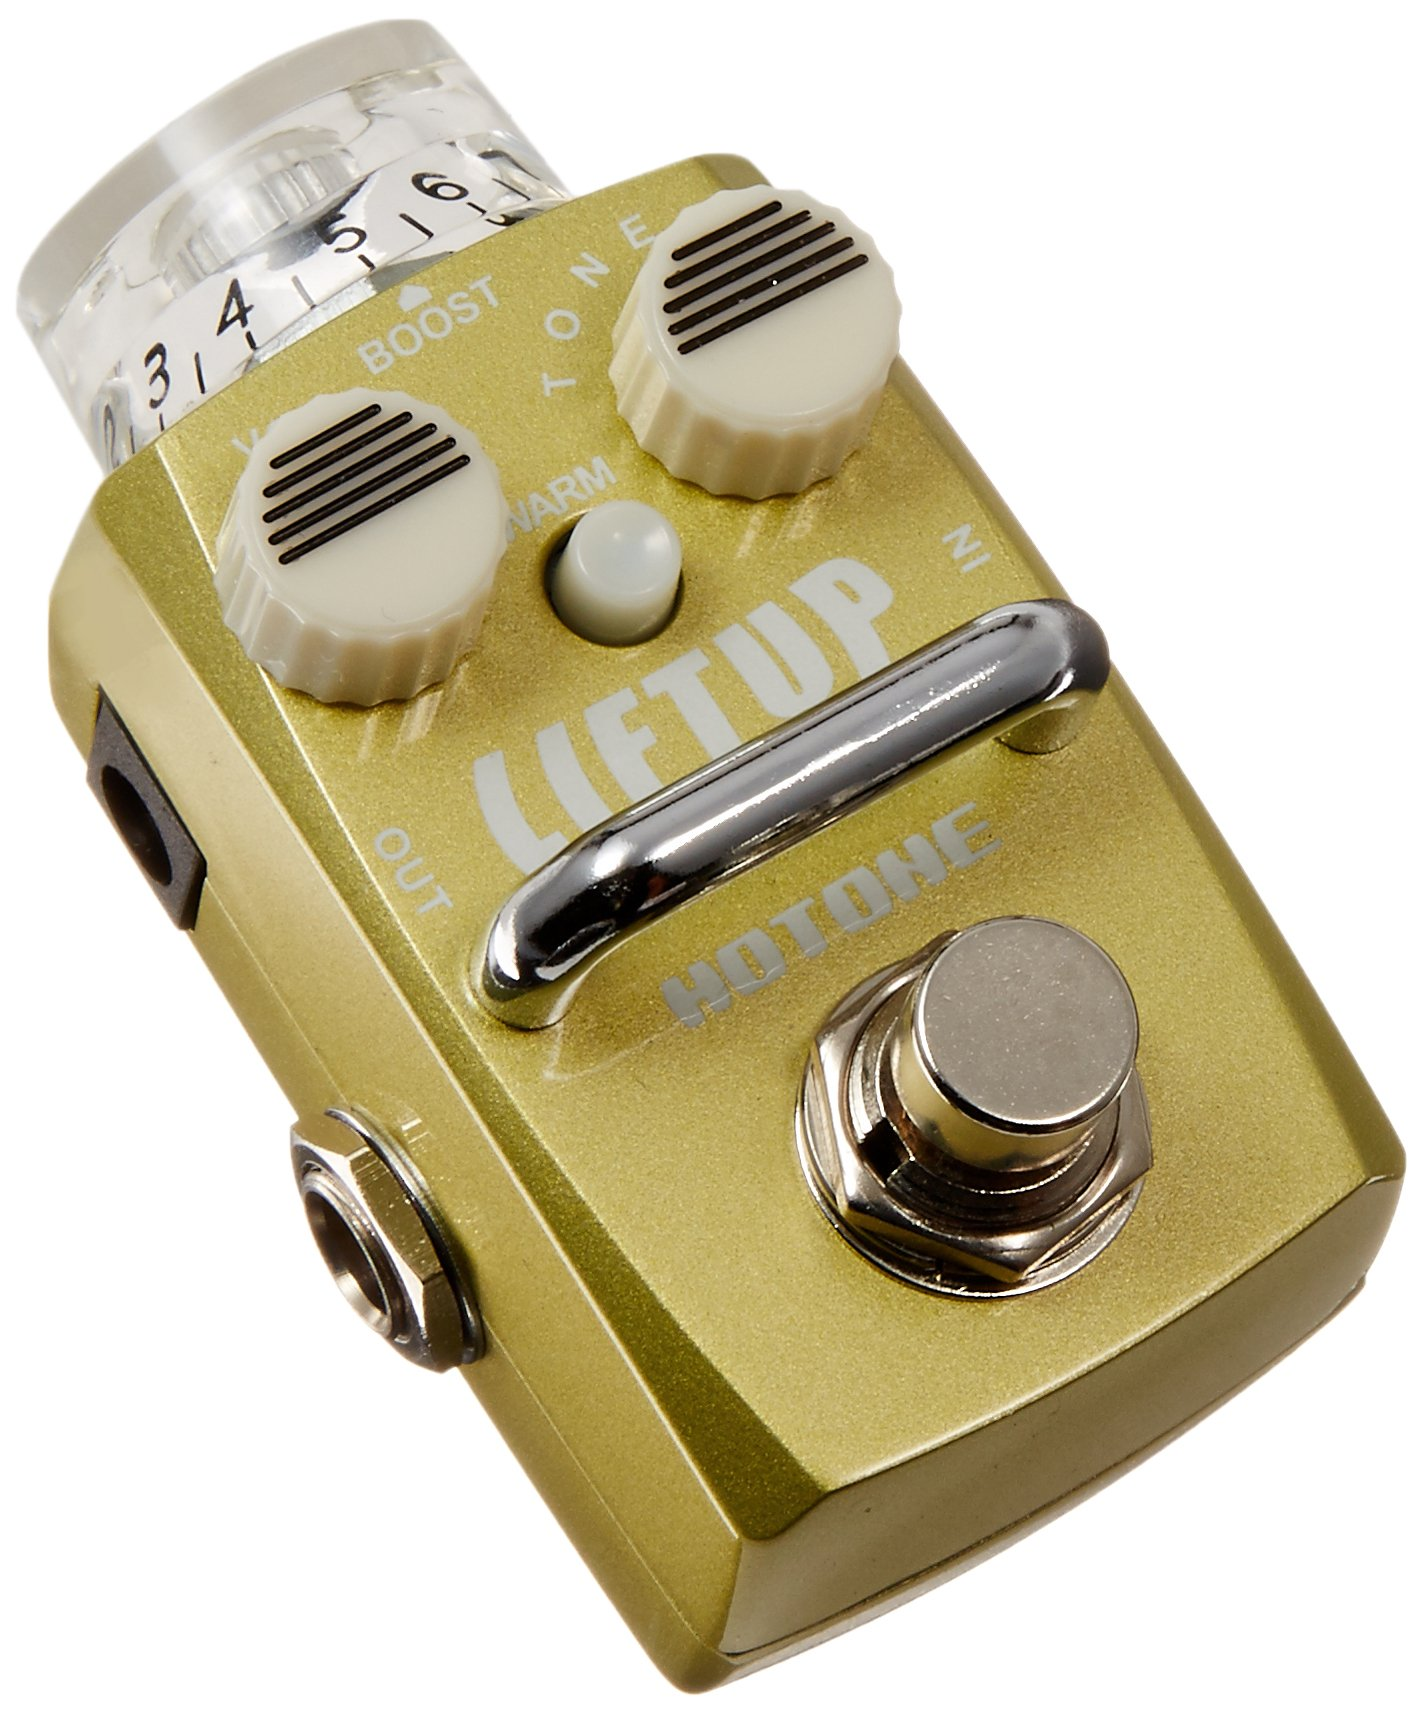 Hotone Skyline Series LIFT UP Compact Clean Boost Guitar Effects Pedal